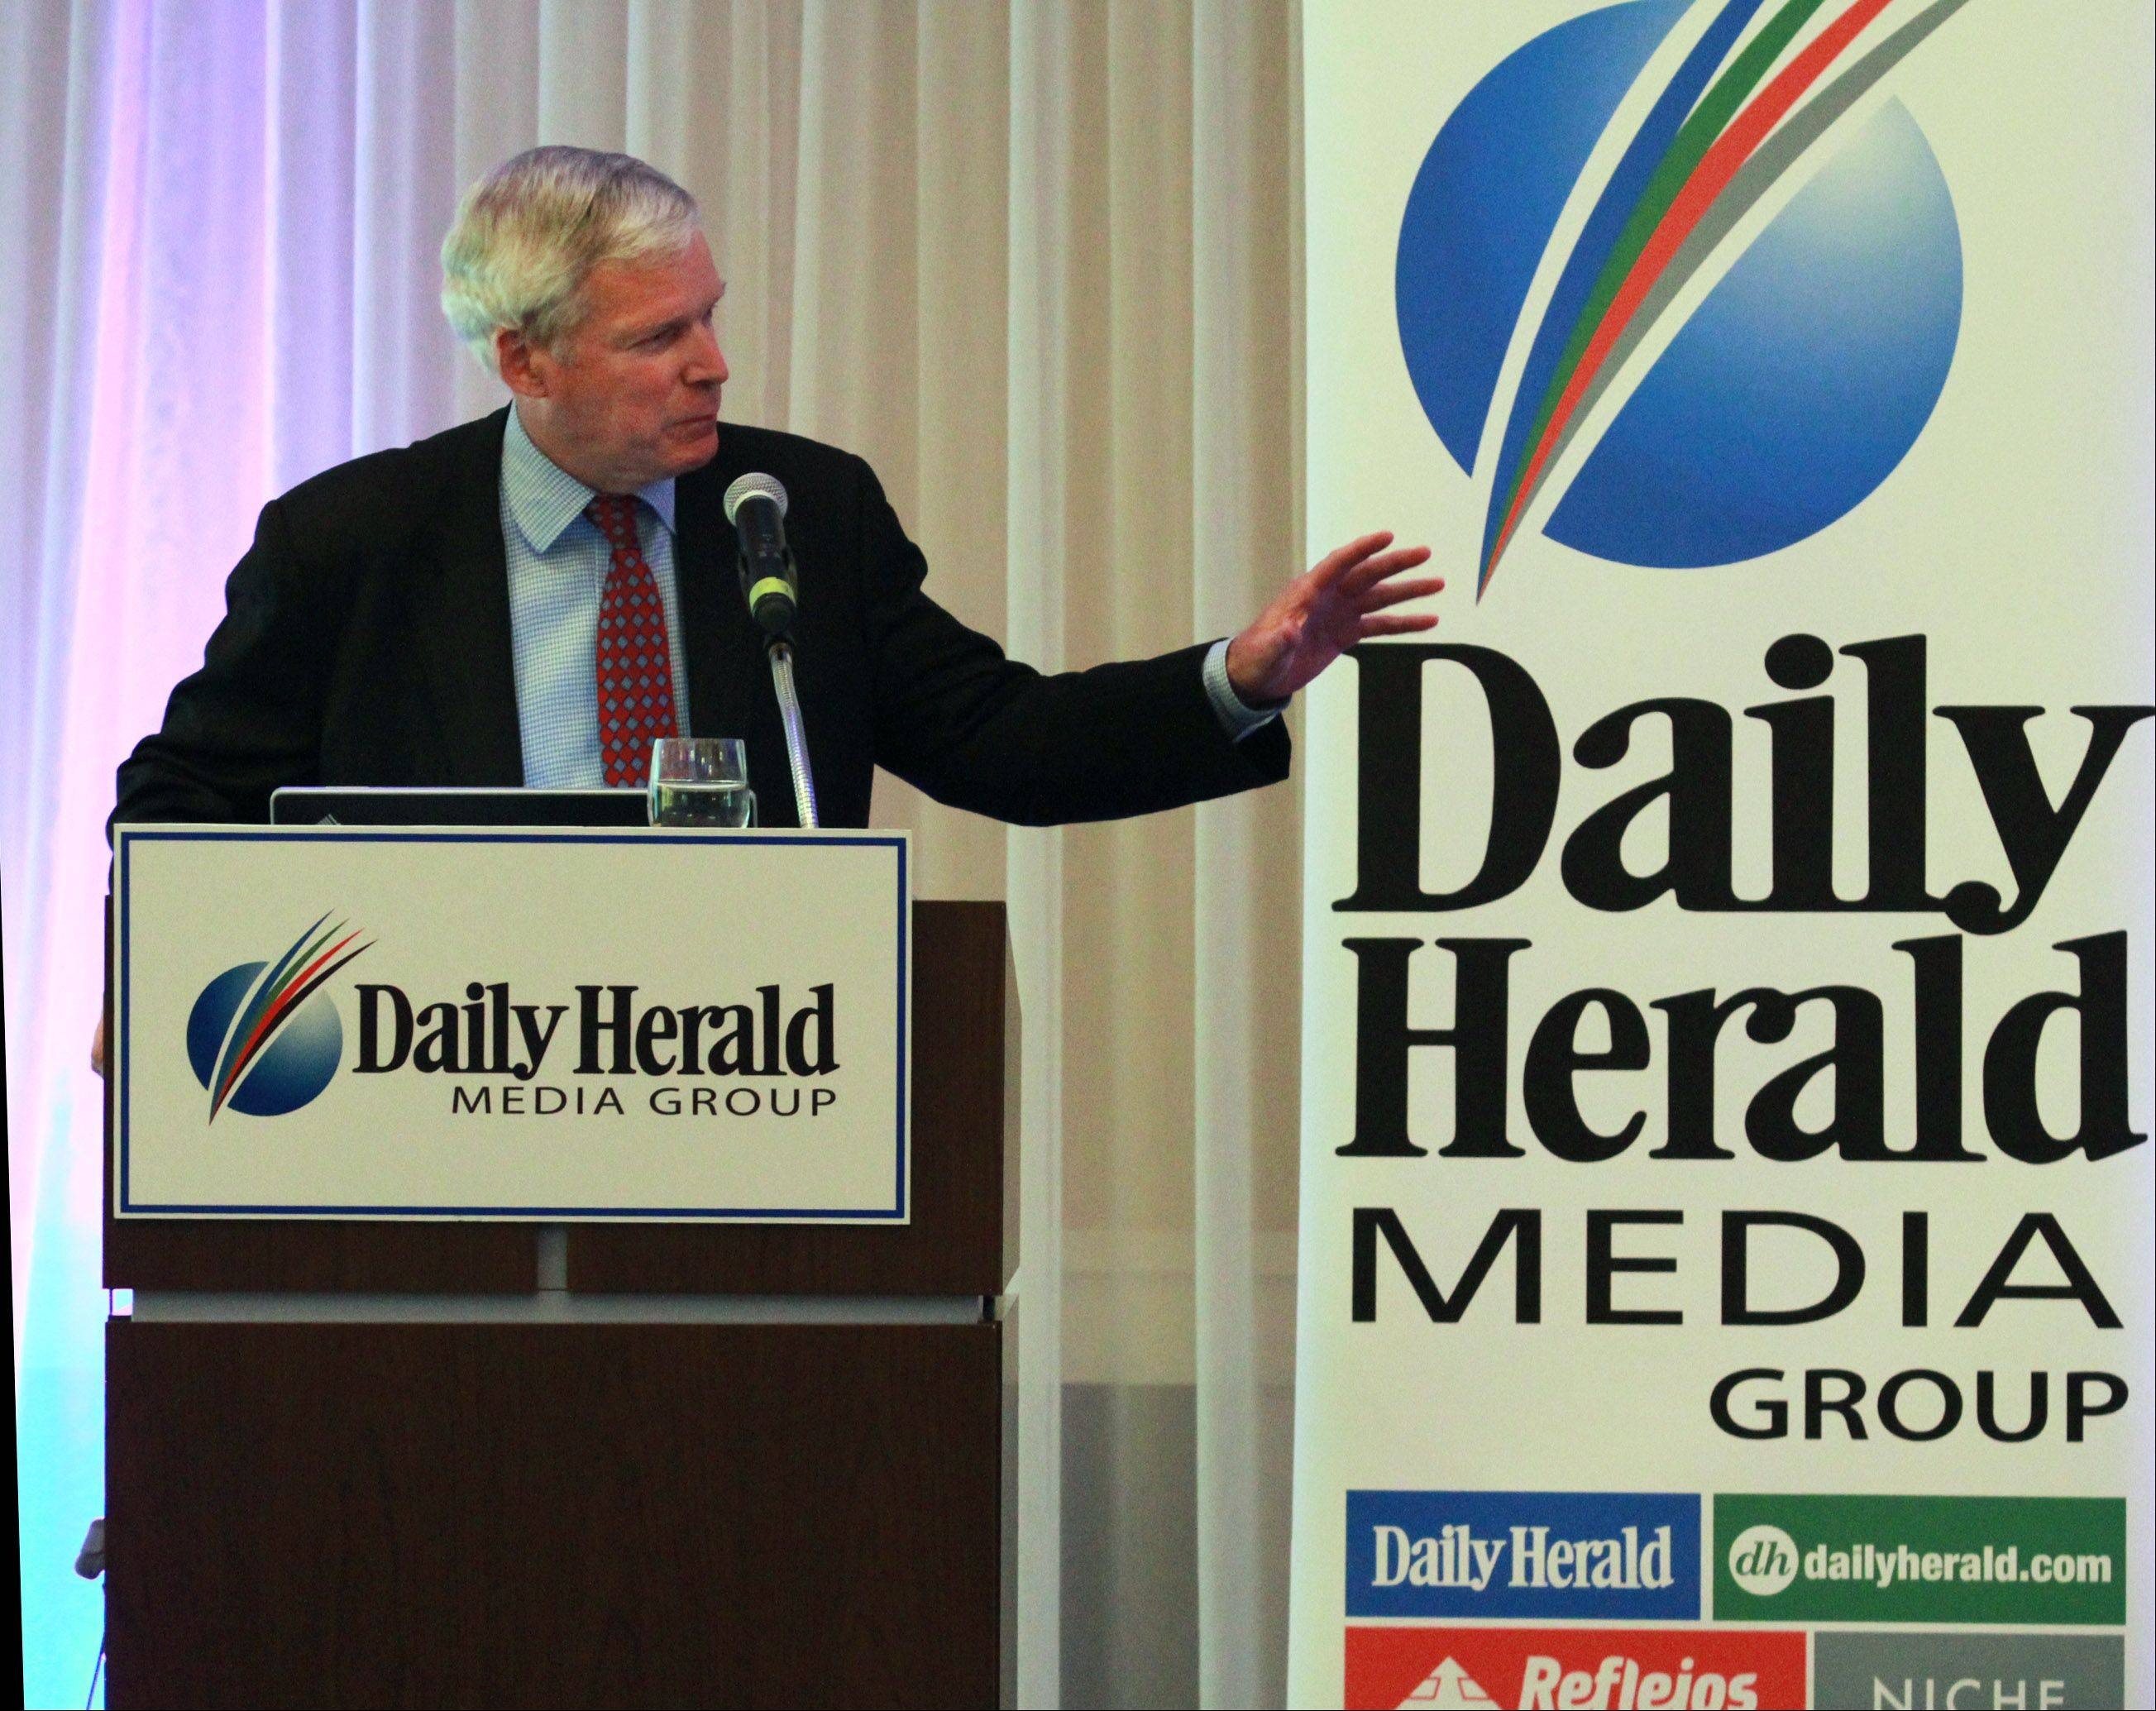 Mark W. Everson, former commissioner of the IRS, speaks Wednesday on the Affordable Care Act during a program hosted by the Daily Herald Media Group.